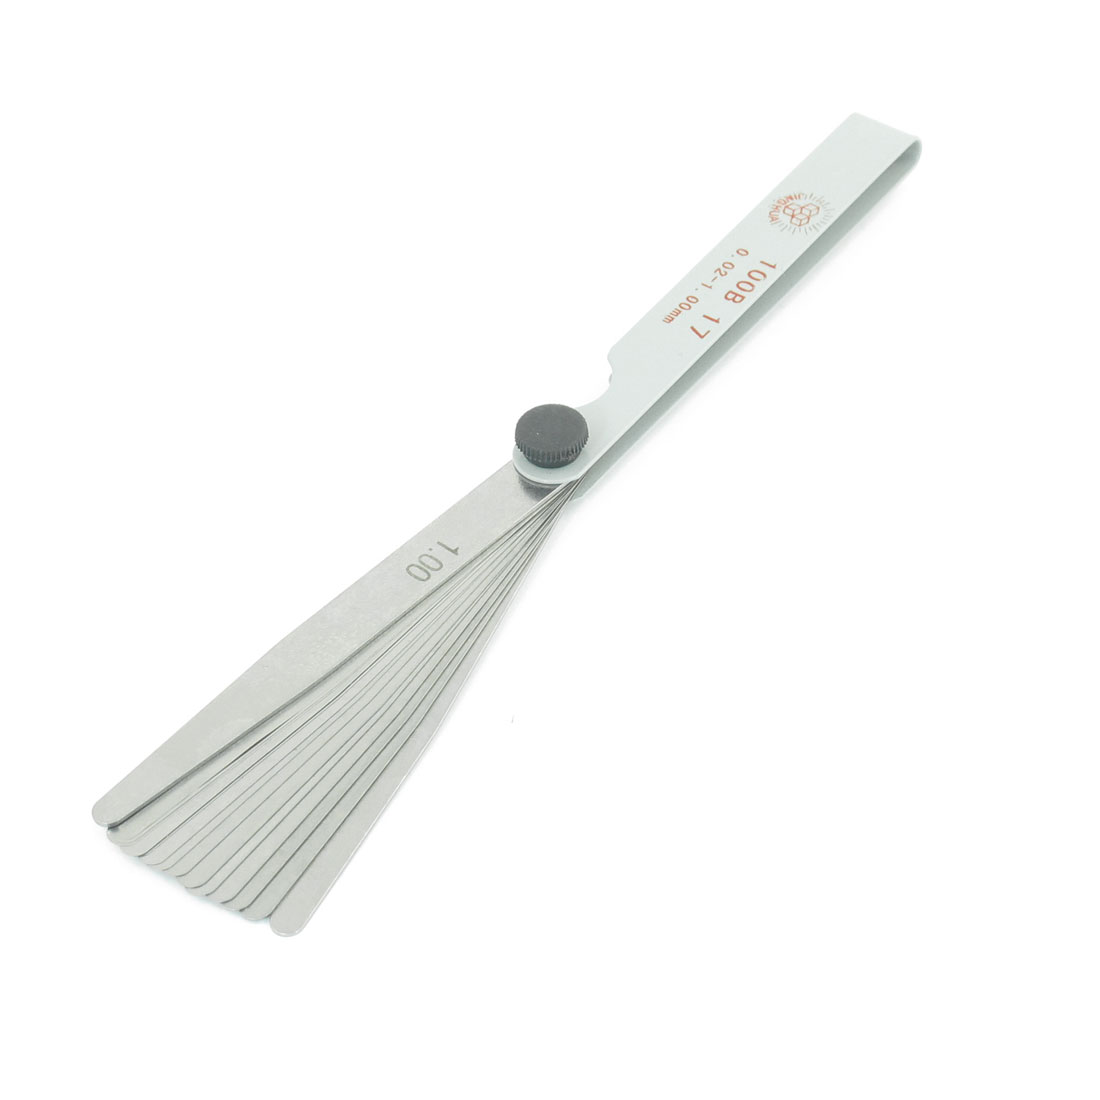 19cm Length 0.02-1mm Metric Gap Measure Filler Feeler Gauge Tool